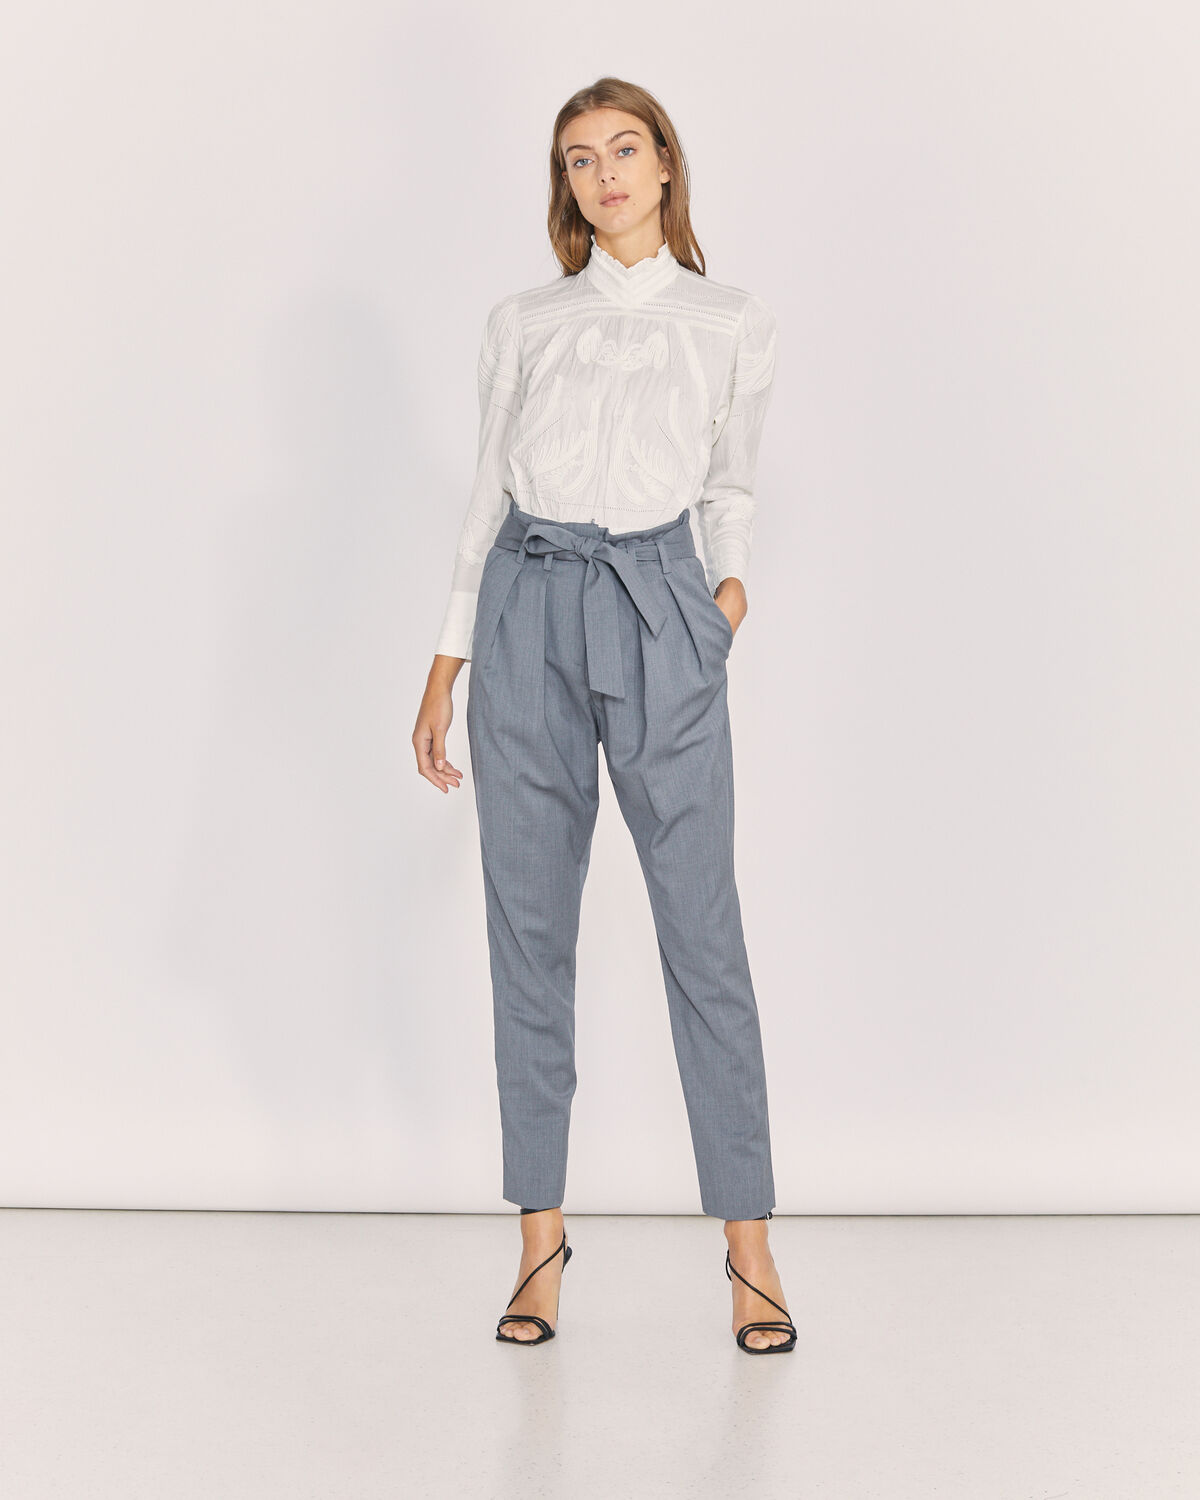 IRO - BETTINA GREY PAPERBAG TROUSERS GREY